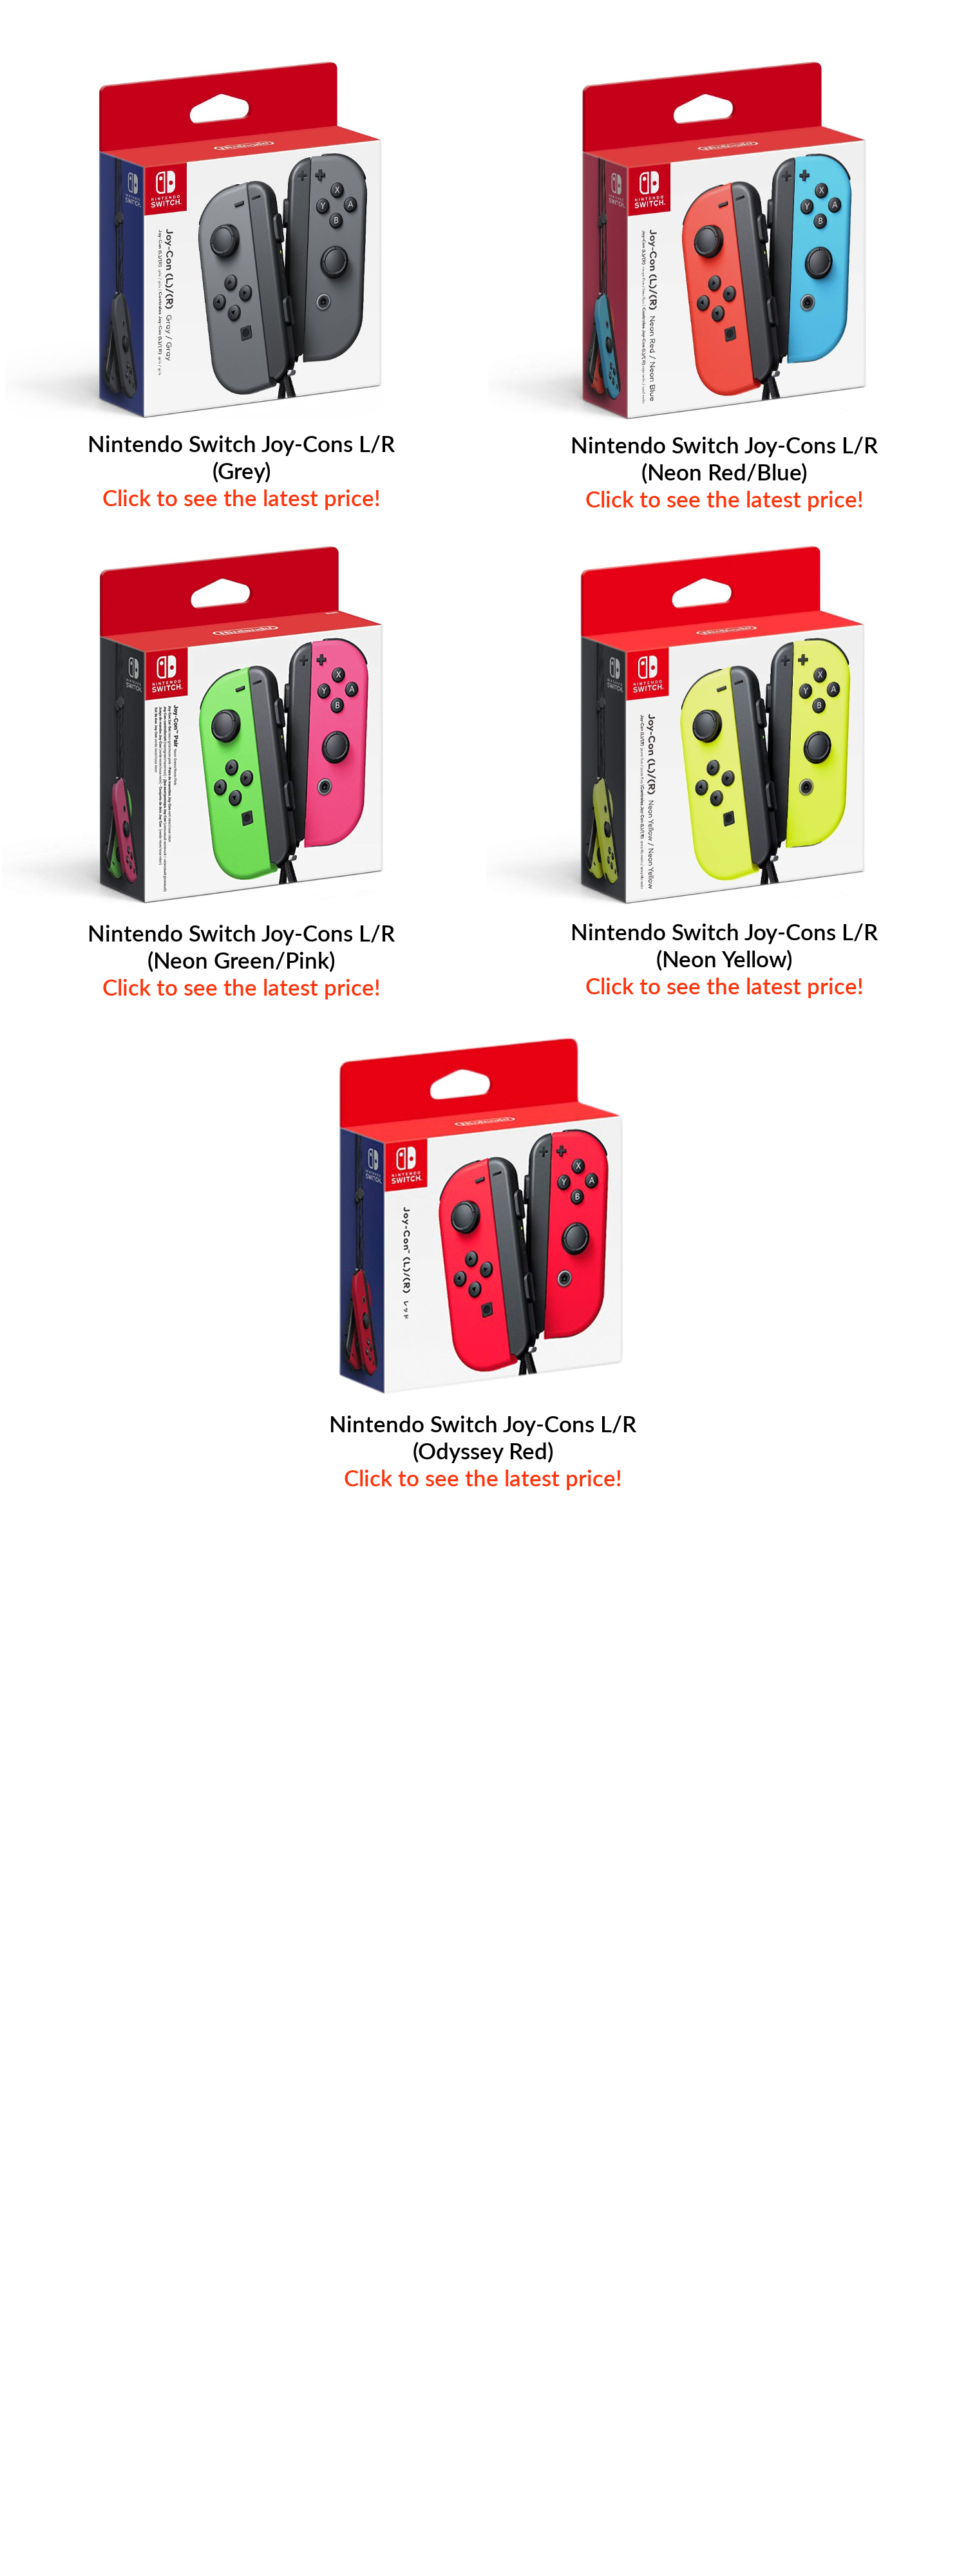 Nintendo Switch Console With Neon Blue Red Joy Con Asia Lazada Strap Yellow We Advocate The Use Of Official Licensed Products For A Safe And Optimized Experience